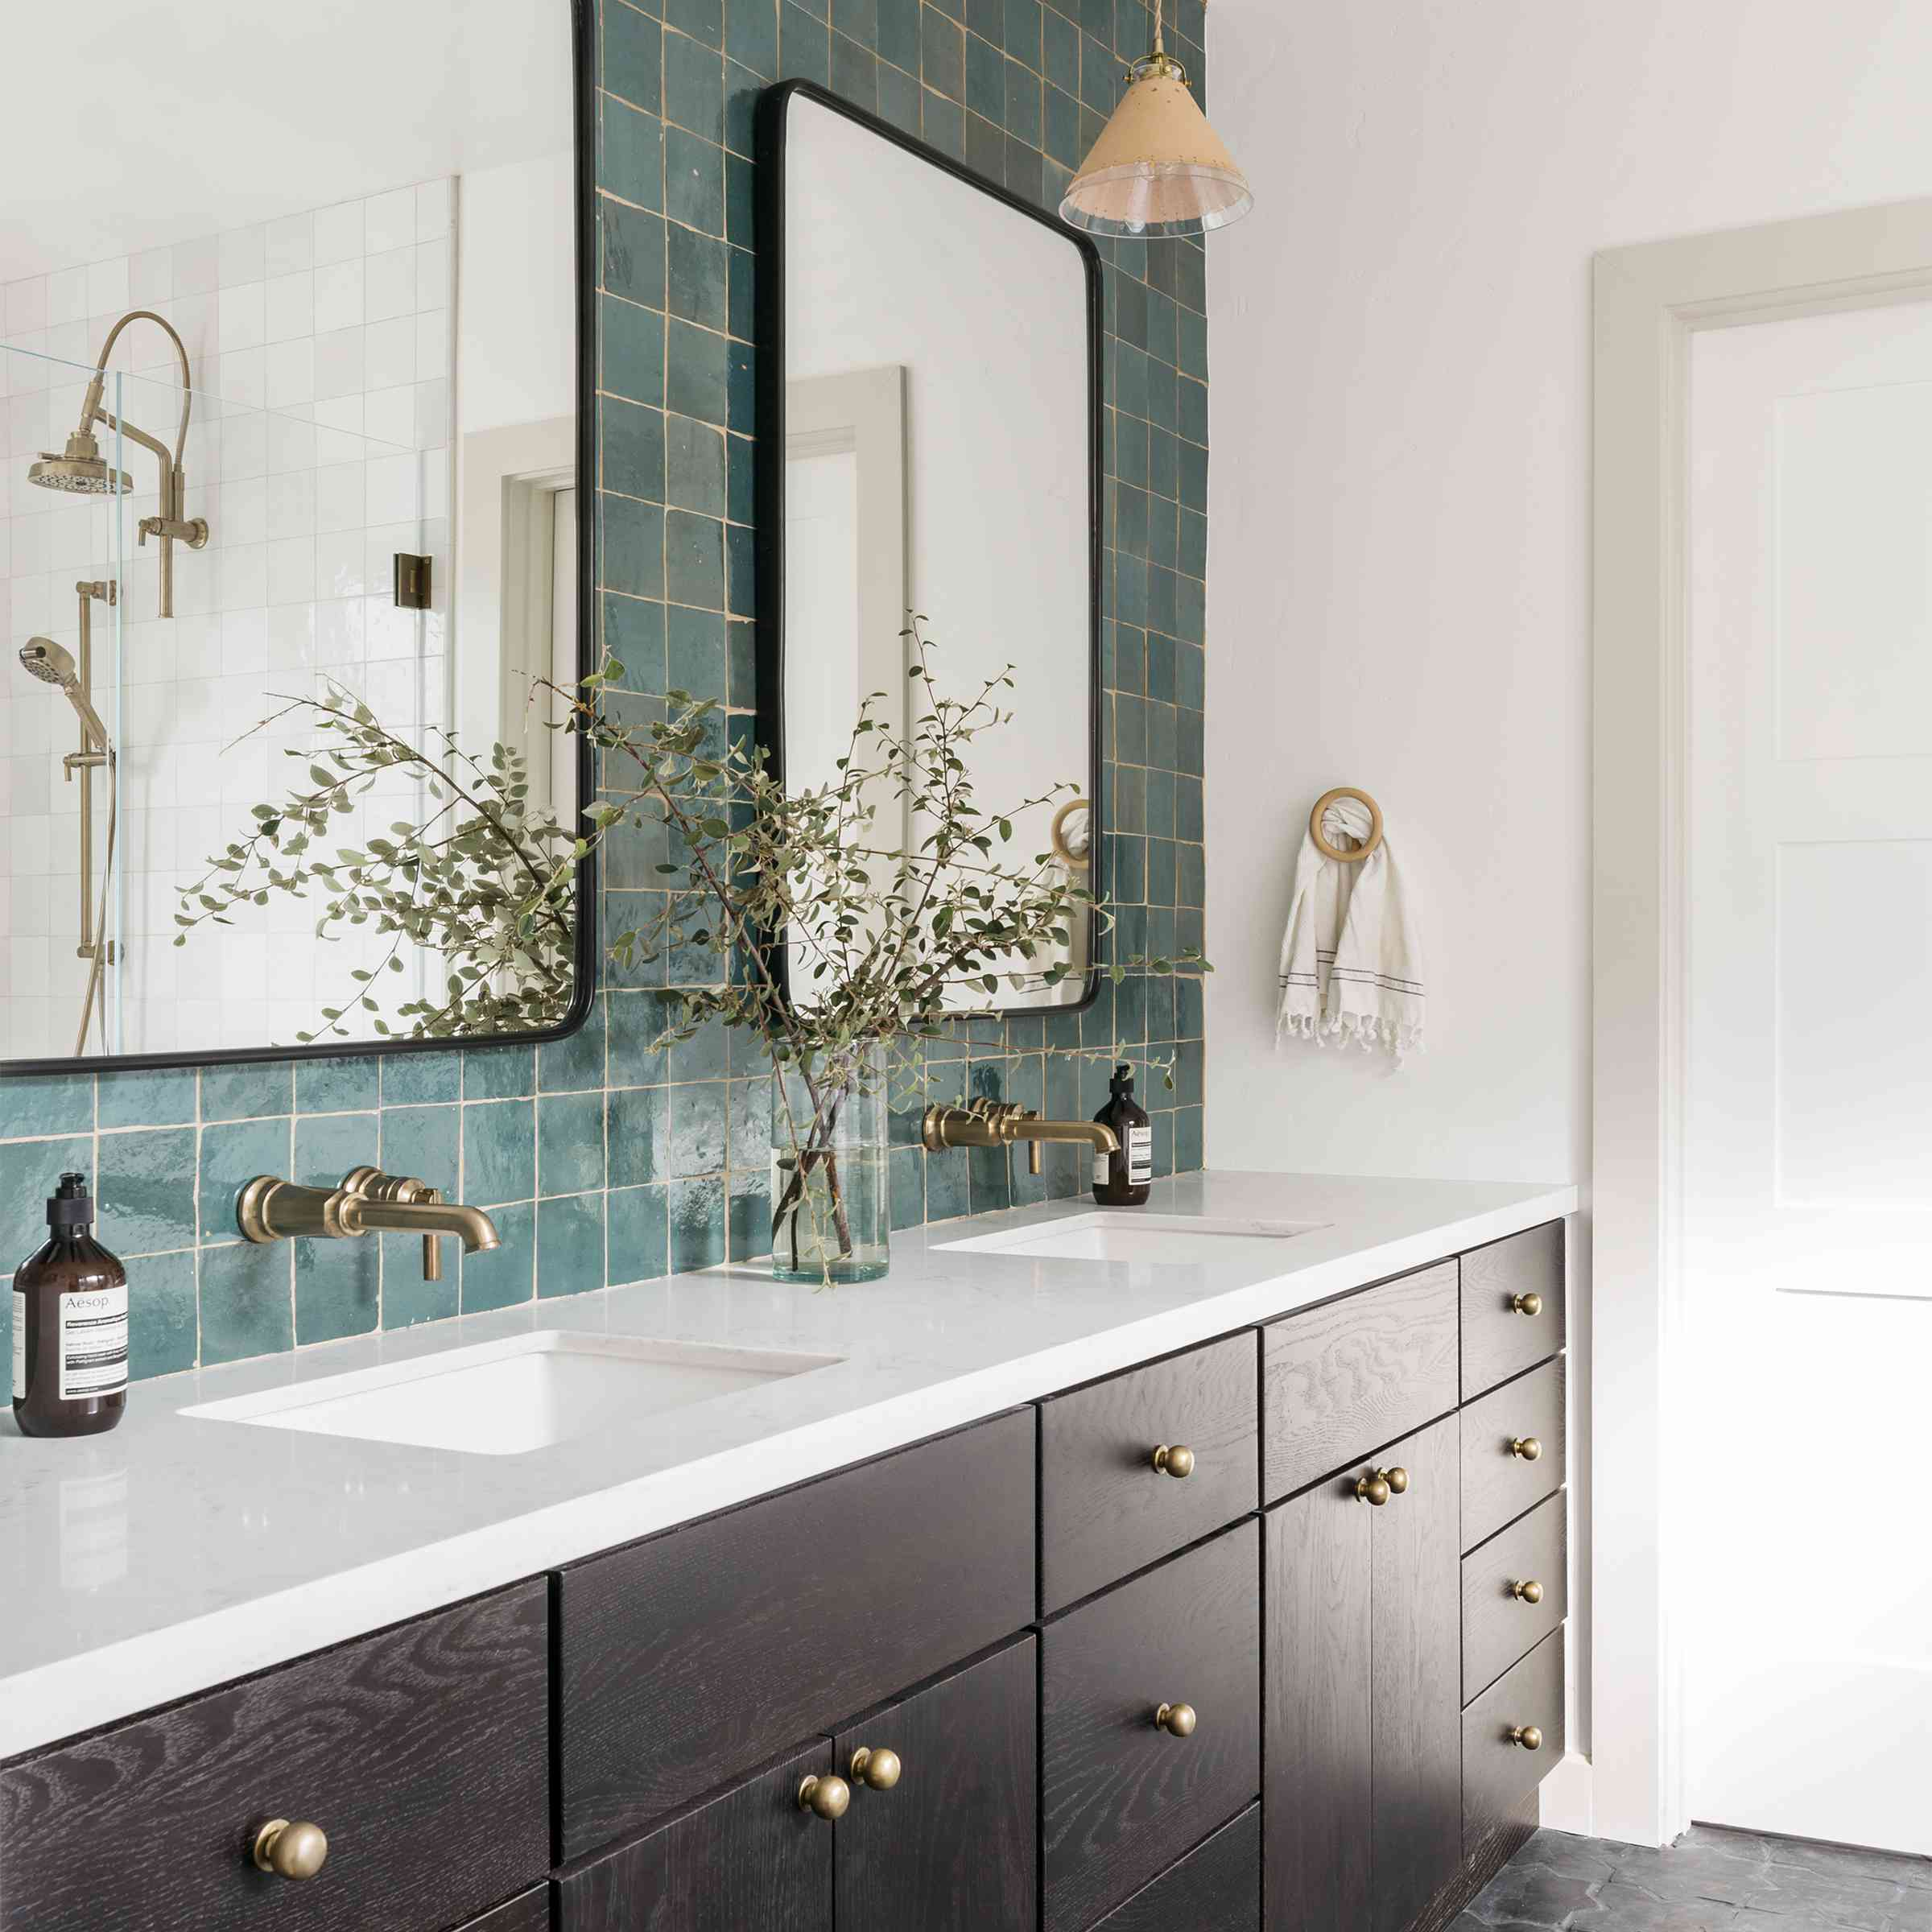 Brett Foken home tour - bathroom with teal tile and dark walnut cabinets